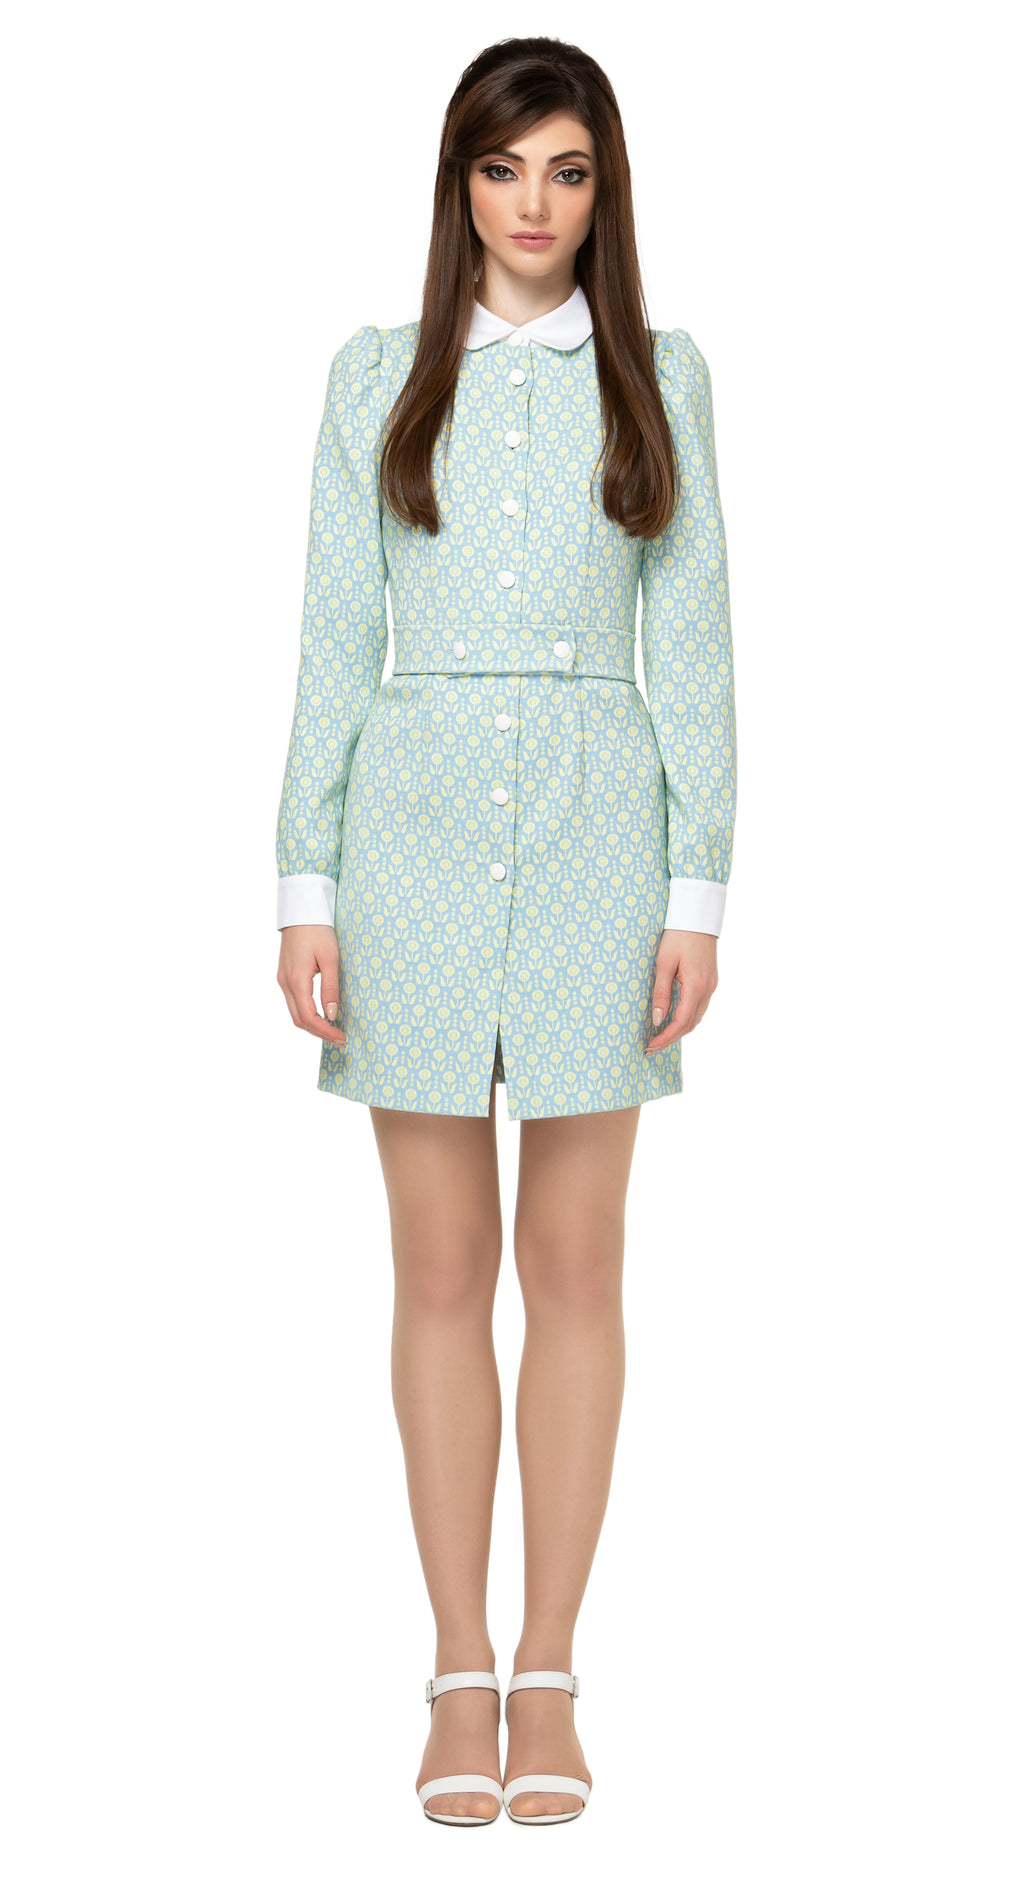 Classic 60s, fitted, button down Spring shirt dress with long, slightly puffed sleeve . 7 white front button closure with a detachable fabric buttoned belt, white collar and cuff detailing.  Also available in blue or green.